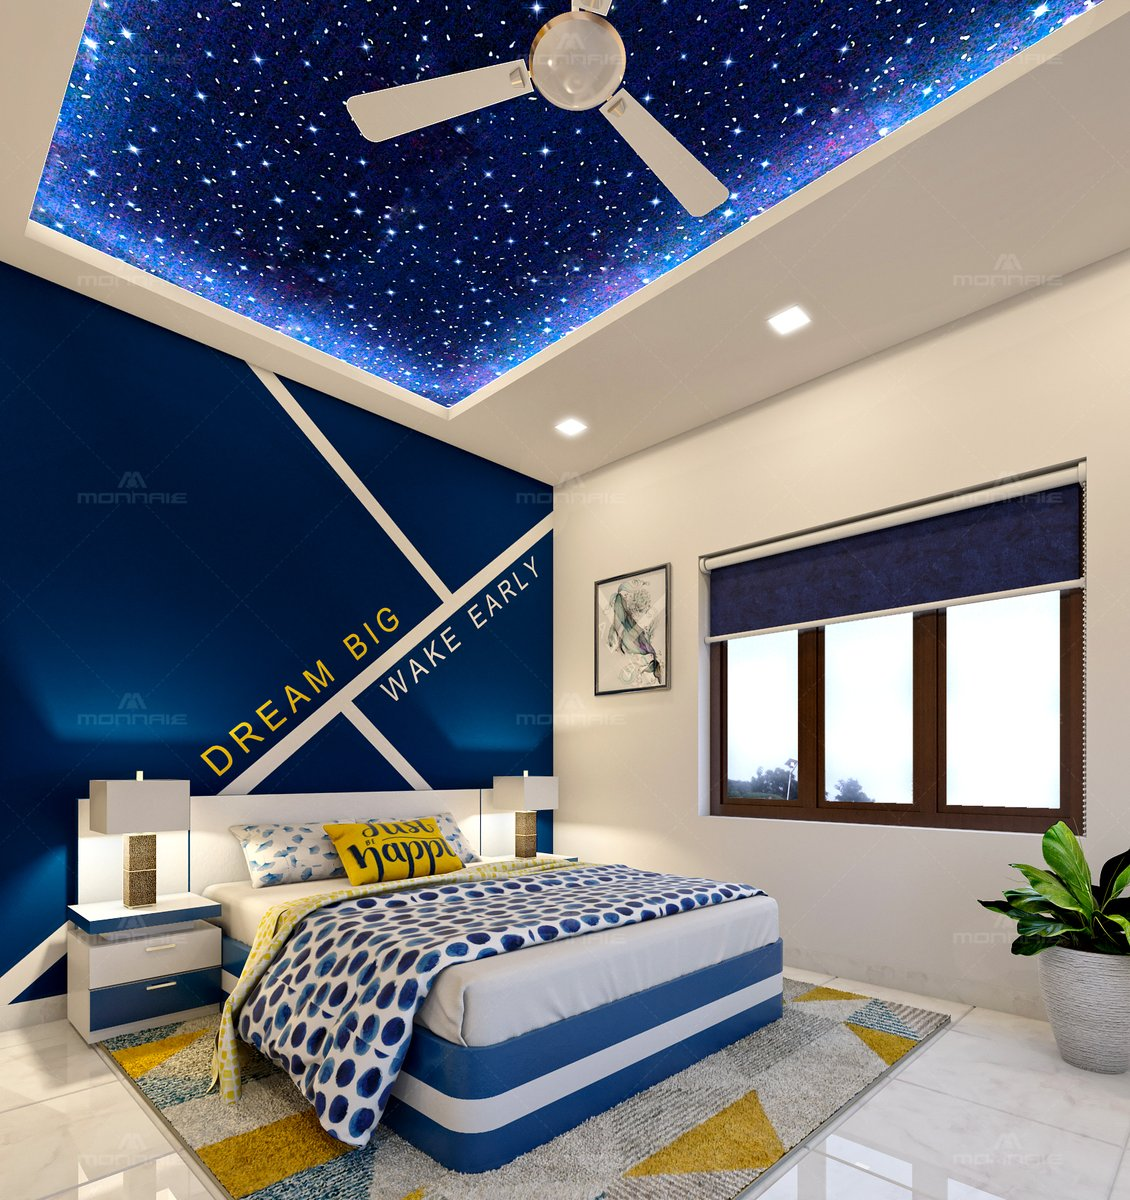 Inspiring Boys Bedroom Design With Captain American Theme... Unique your home@  http://www. monnaie.in     #monnaie #architecturaldesign #interiordesign #homedesign #bestarchitectsinkochi #bedroomdesigns <br>http://pic.twitter.com/MCZYWlgtVh